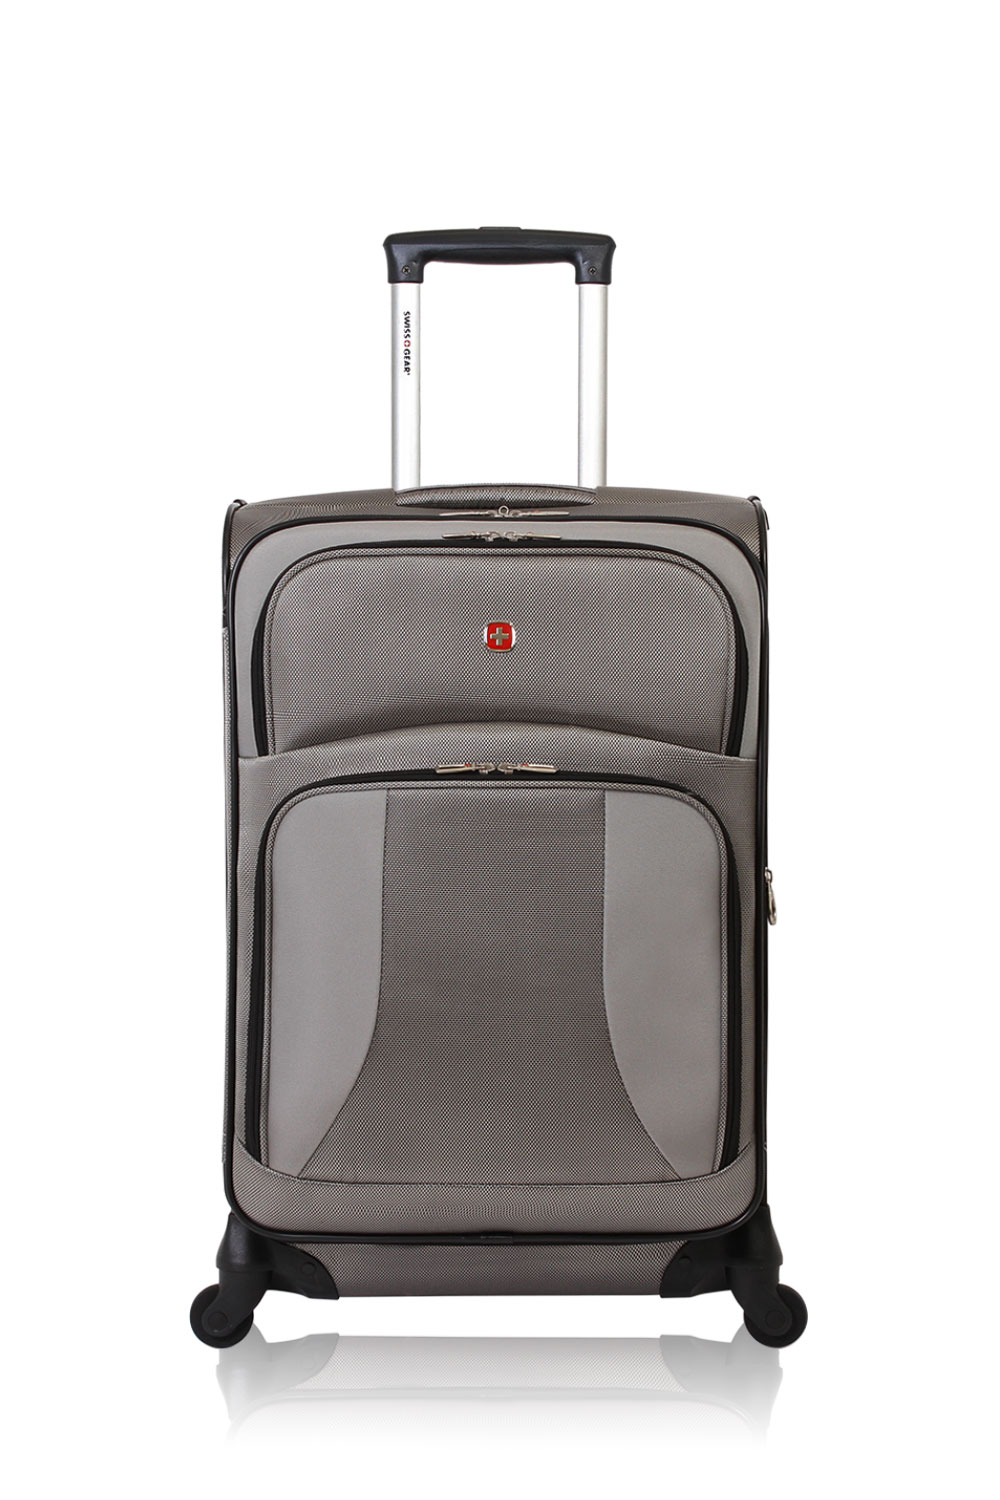 "SWISSGEAR 7211 24"" Expandable Spinner - Pewter Luggage"